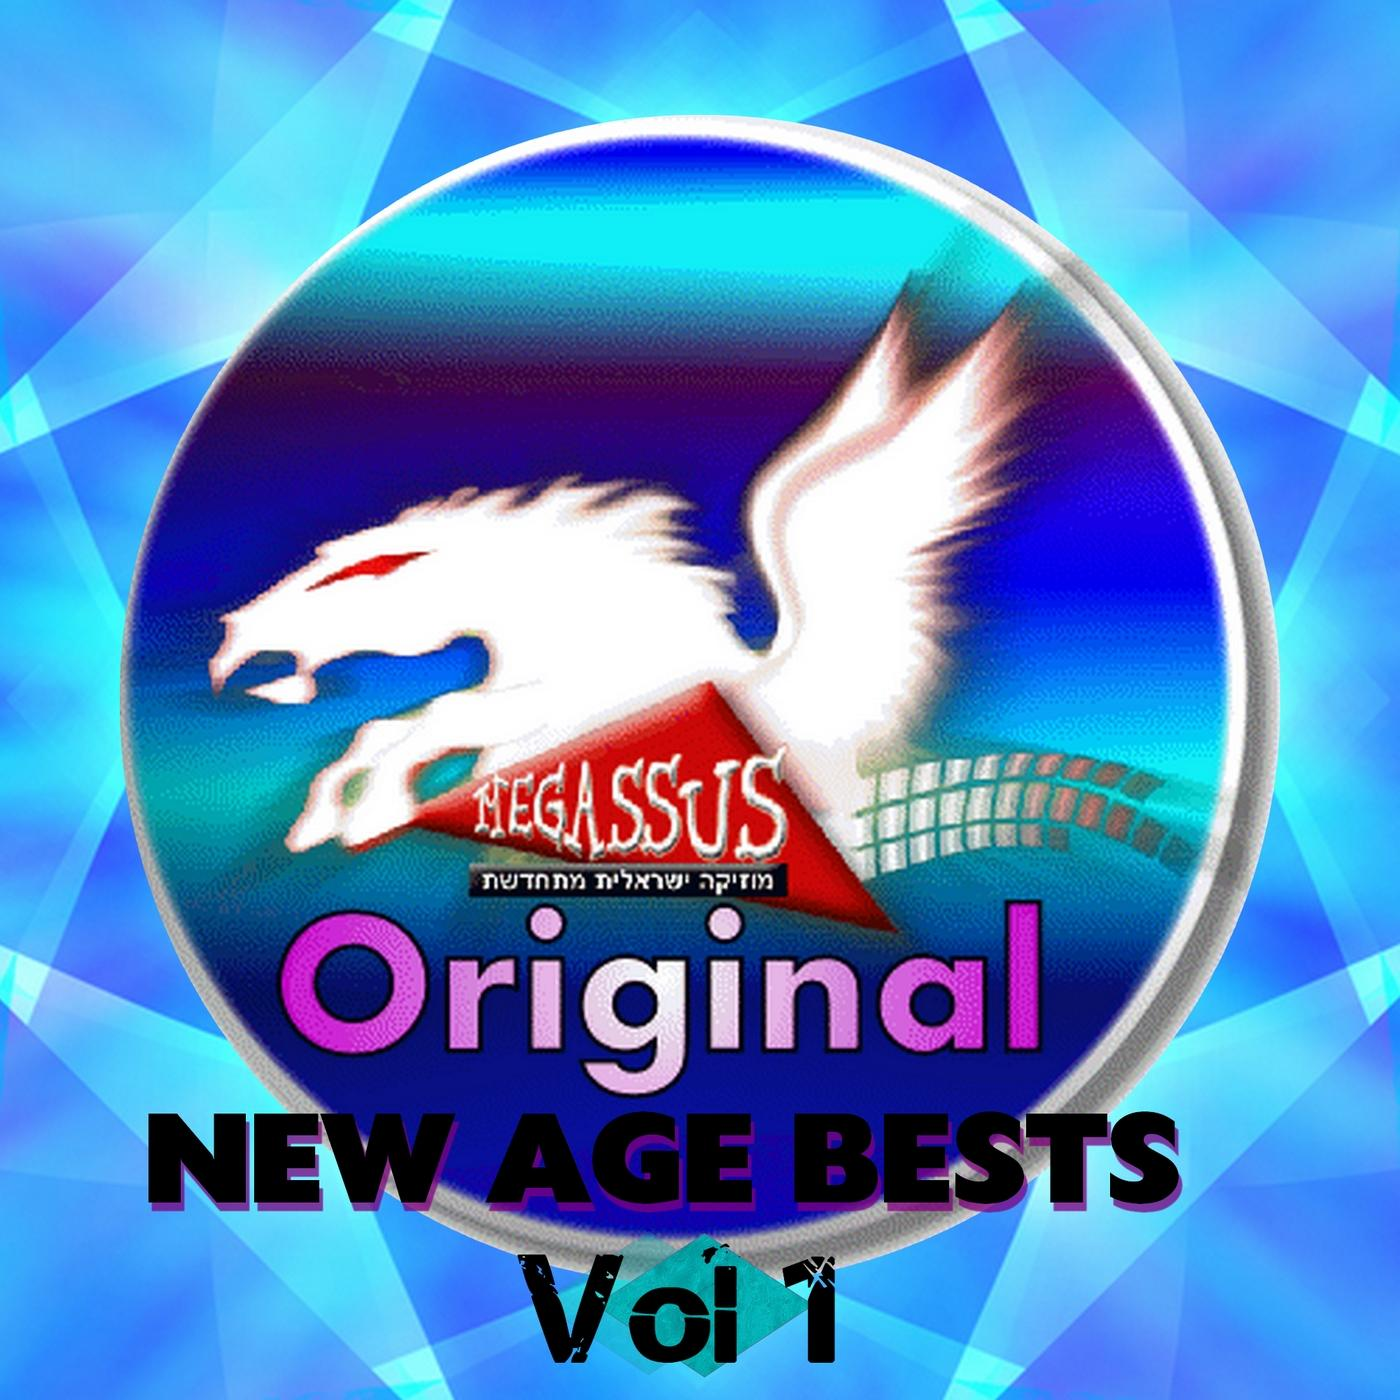 Megassus Original: New Age Bests, Vol. 1